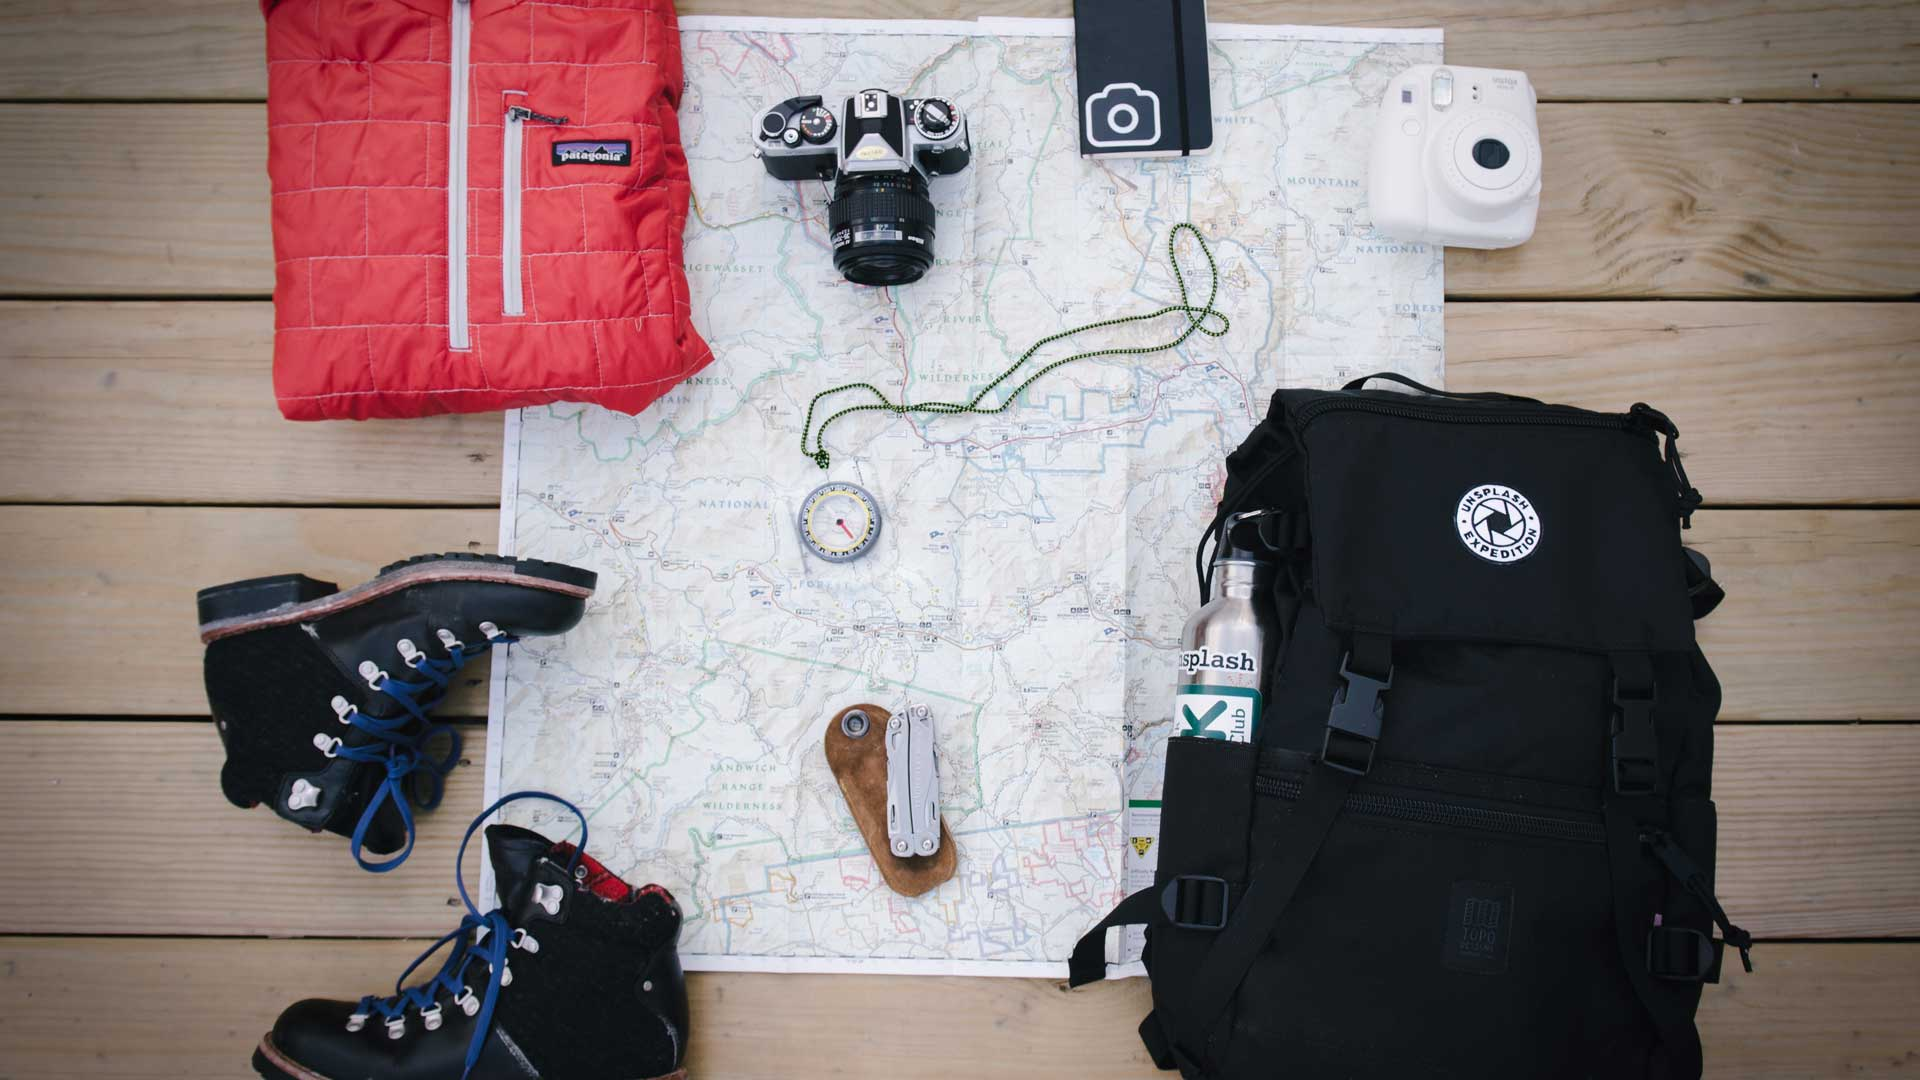 Used-Hiking-Gear-For-Outdoor-on-HouzzLife